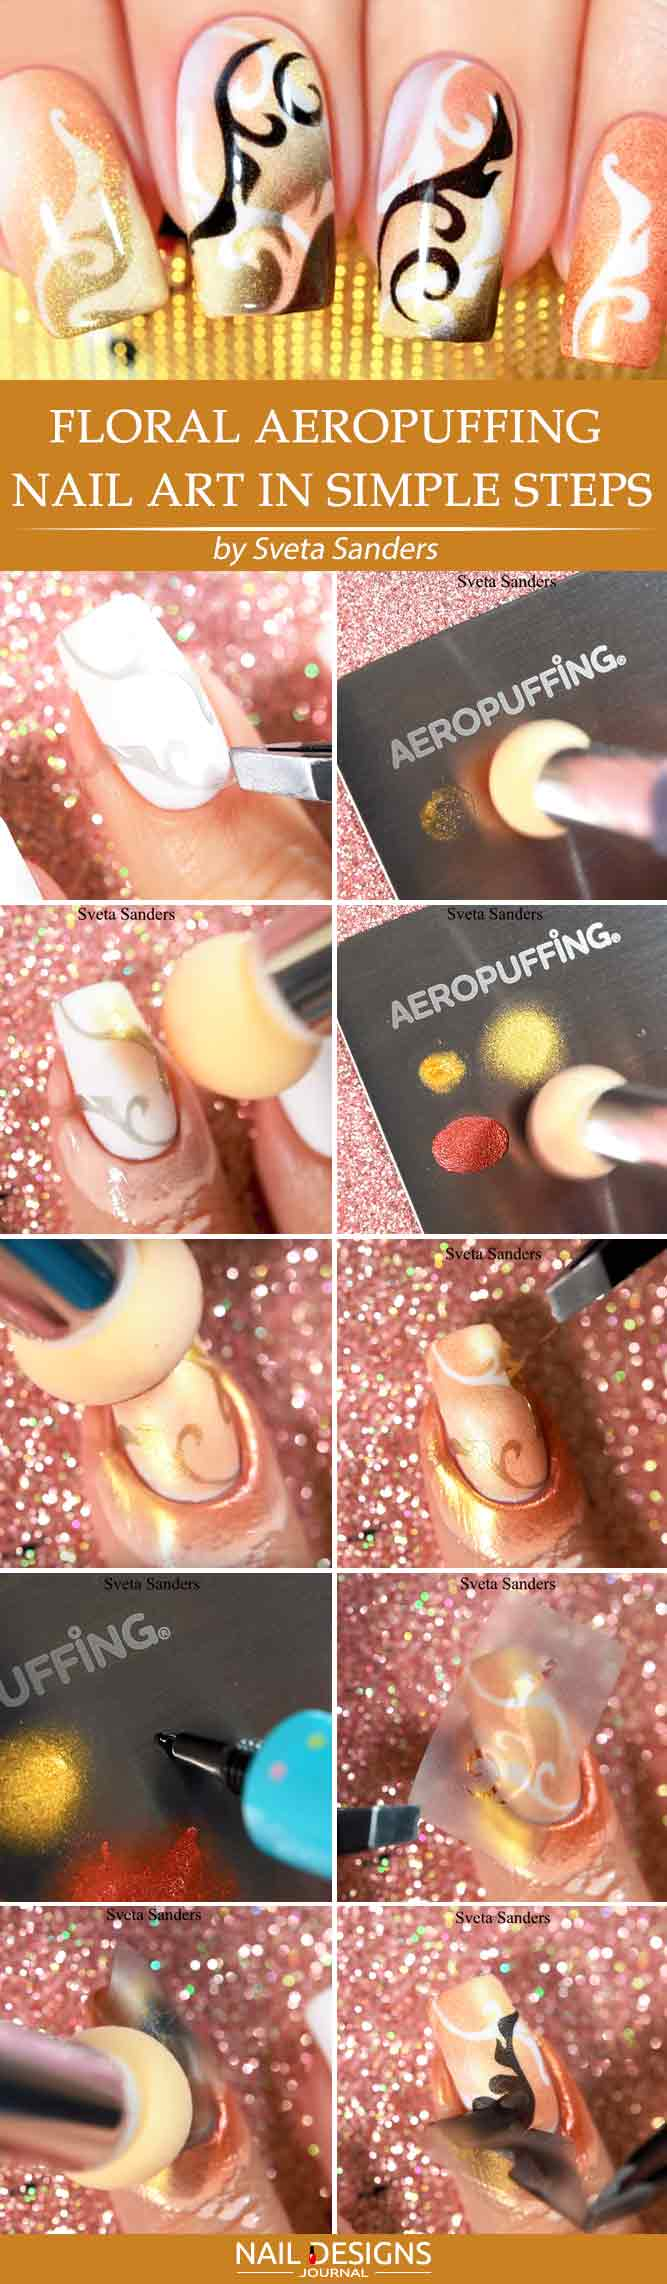 Floral Aeropuffing Nail Art In Simple Steps